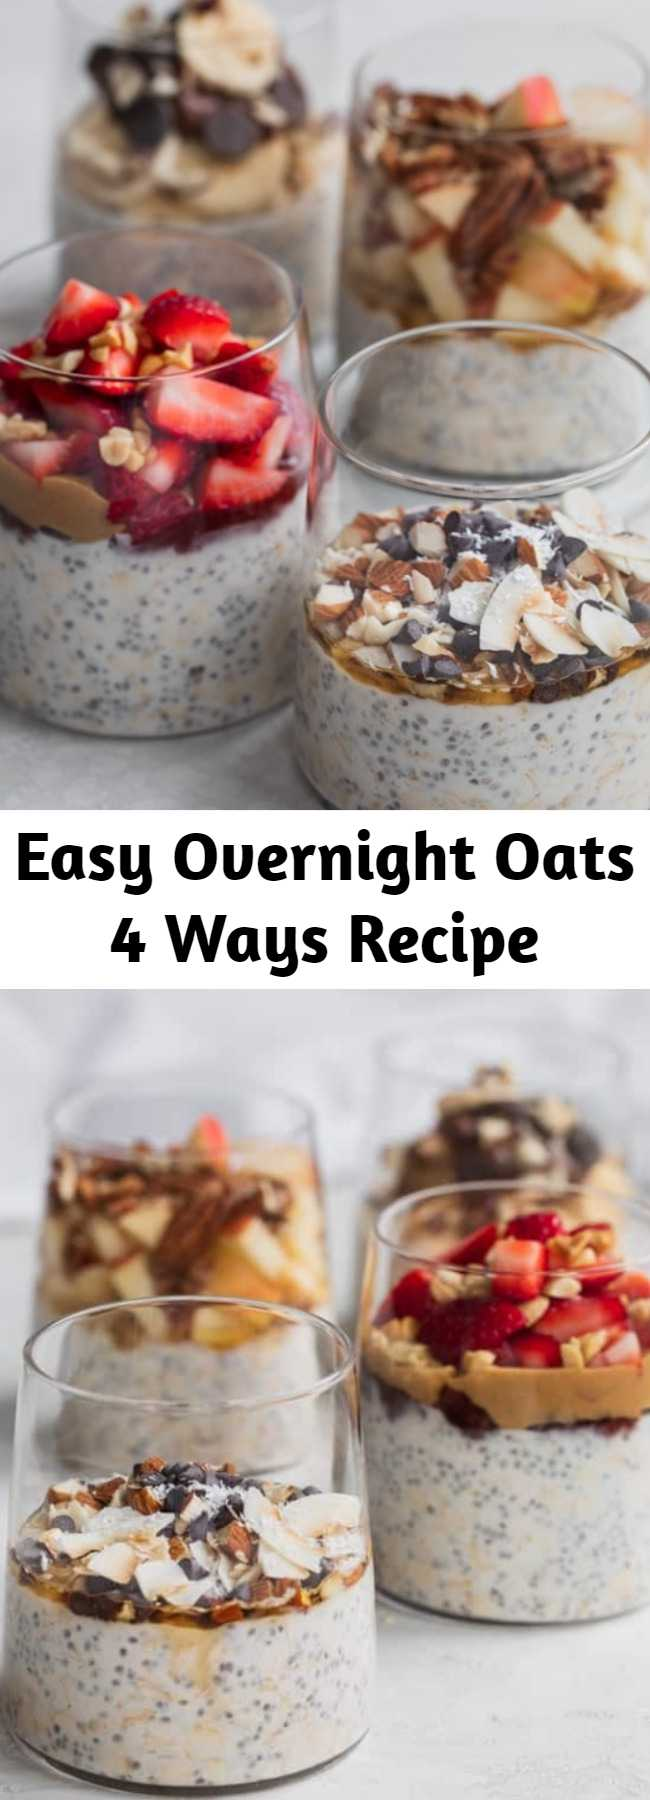 Easy Overnight Oats 4 Ways Recipe - This easy overnight oats recipe is a healthy simple breakfast that you can make ahead for busy mornings and customize with many add-ins and toppings! #overnightoats #breakfast #breakfast